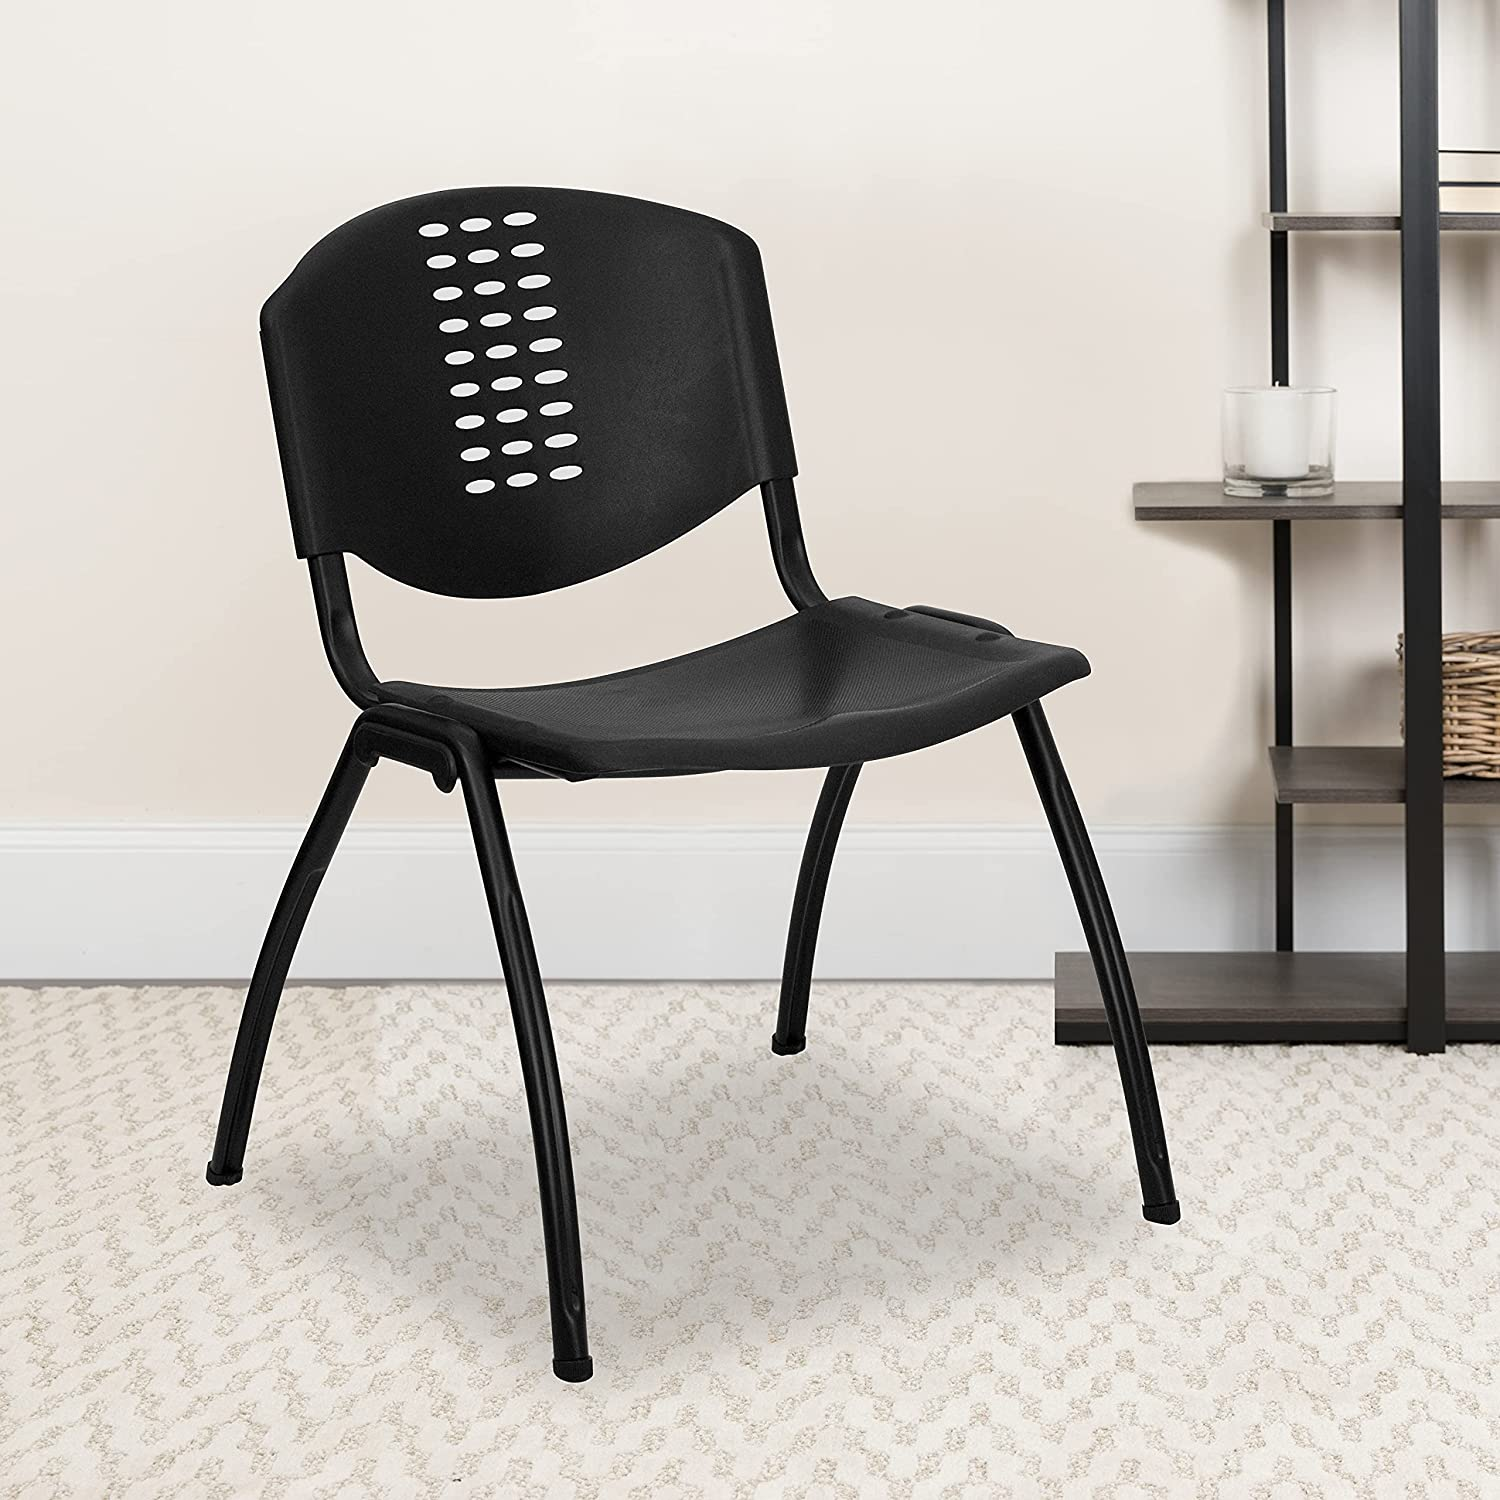 BizChair 5 Pack 880 lb. Rated Black Chair Stack C - Oval High quality Spring new work Plastic